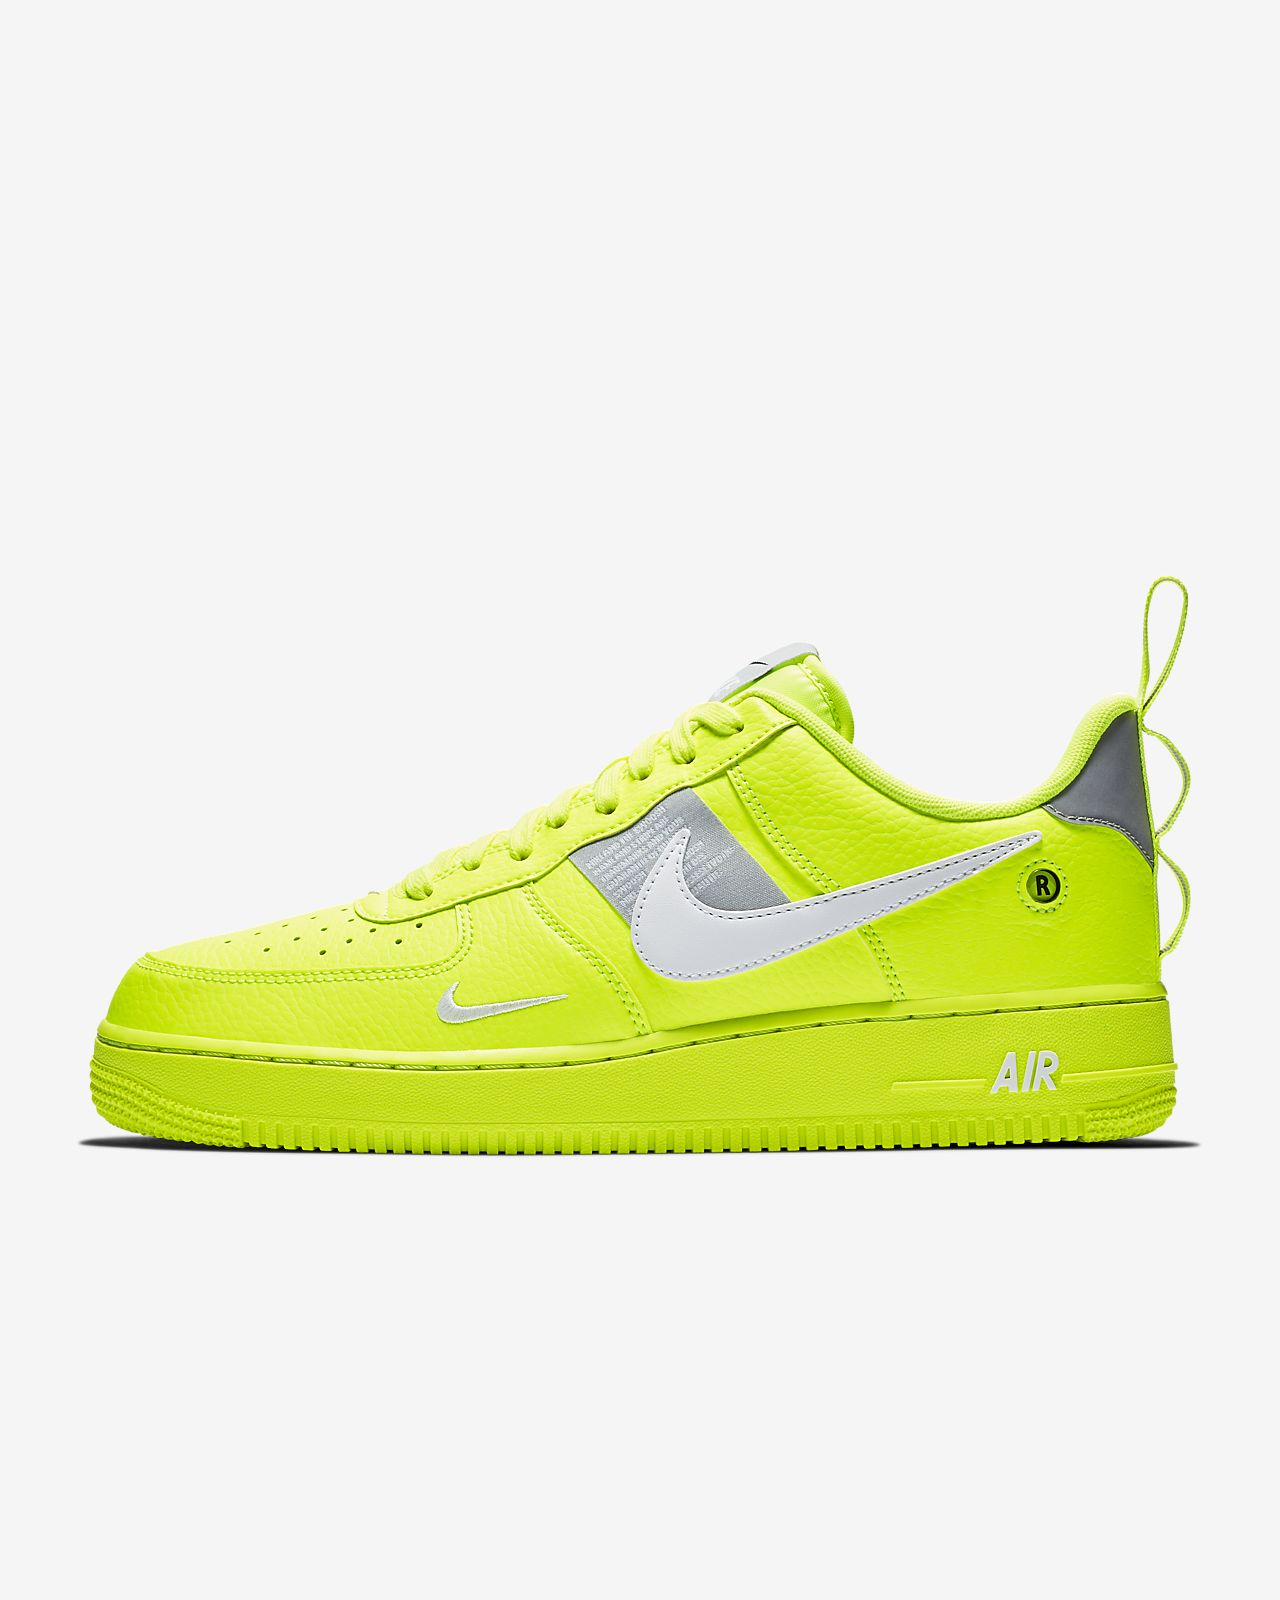 separation shoes 6c6f3 33382 ... Nike Air Force 1 07 LV8 Utility Mens Shoe